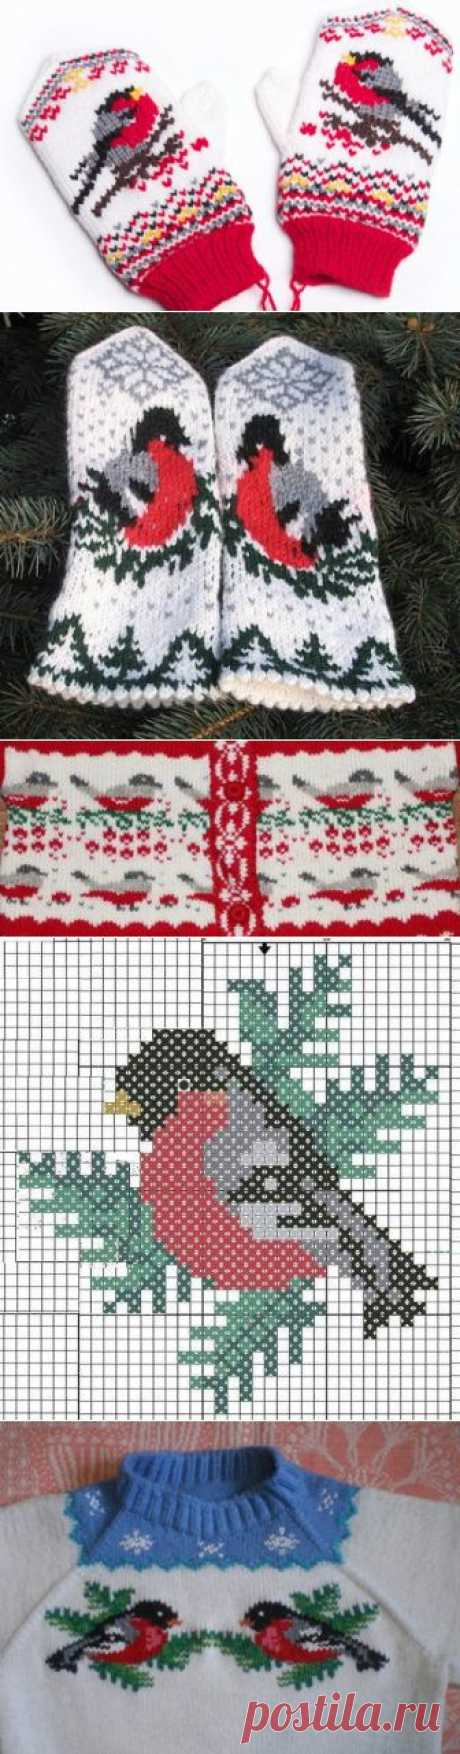 Ornament 'Bullfinch'. Schemes for knitting.   the Ladies' moneybox   Mittens, gloves, mitts   Posted